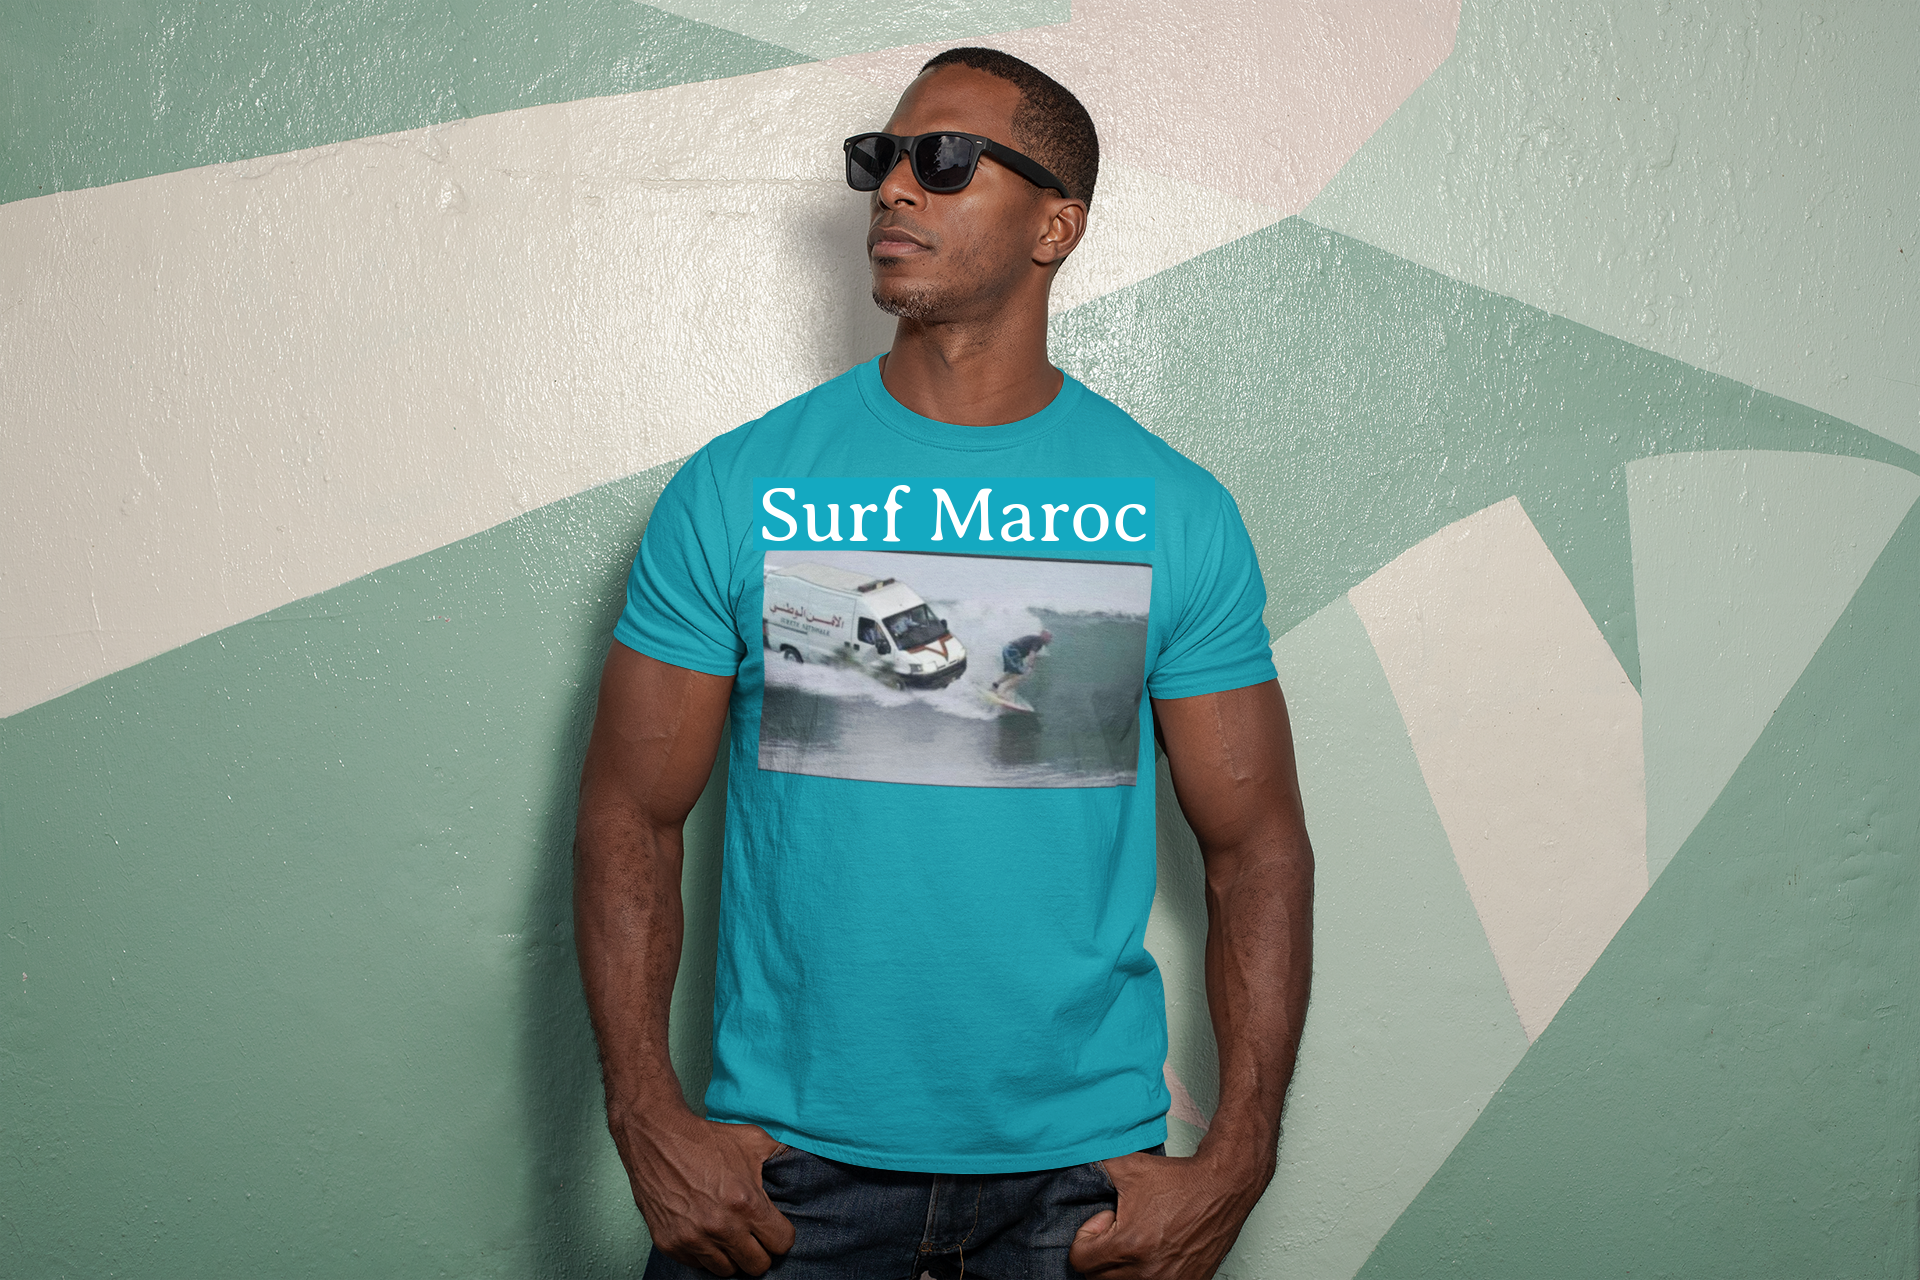 t-shirt-mockup-featuring-a-man-wearing-s